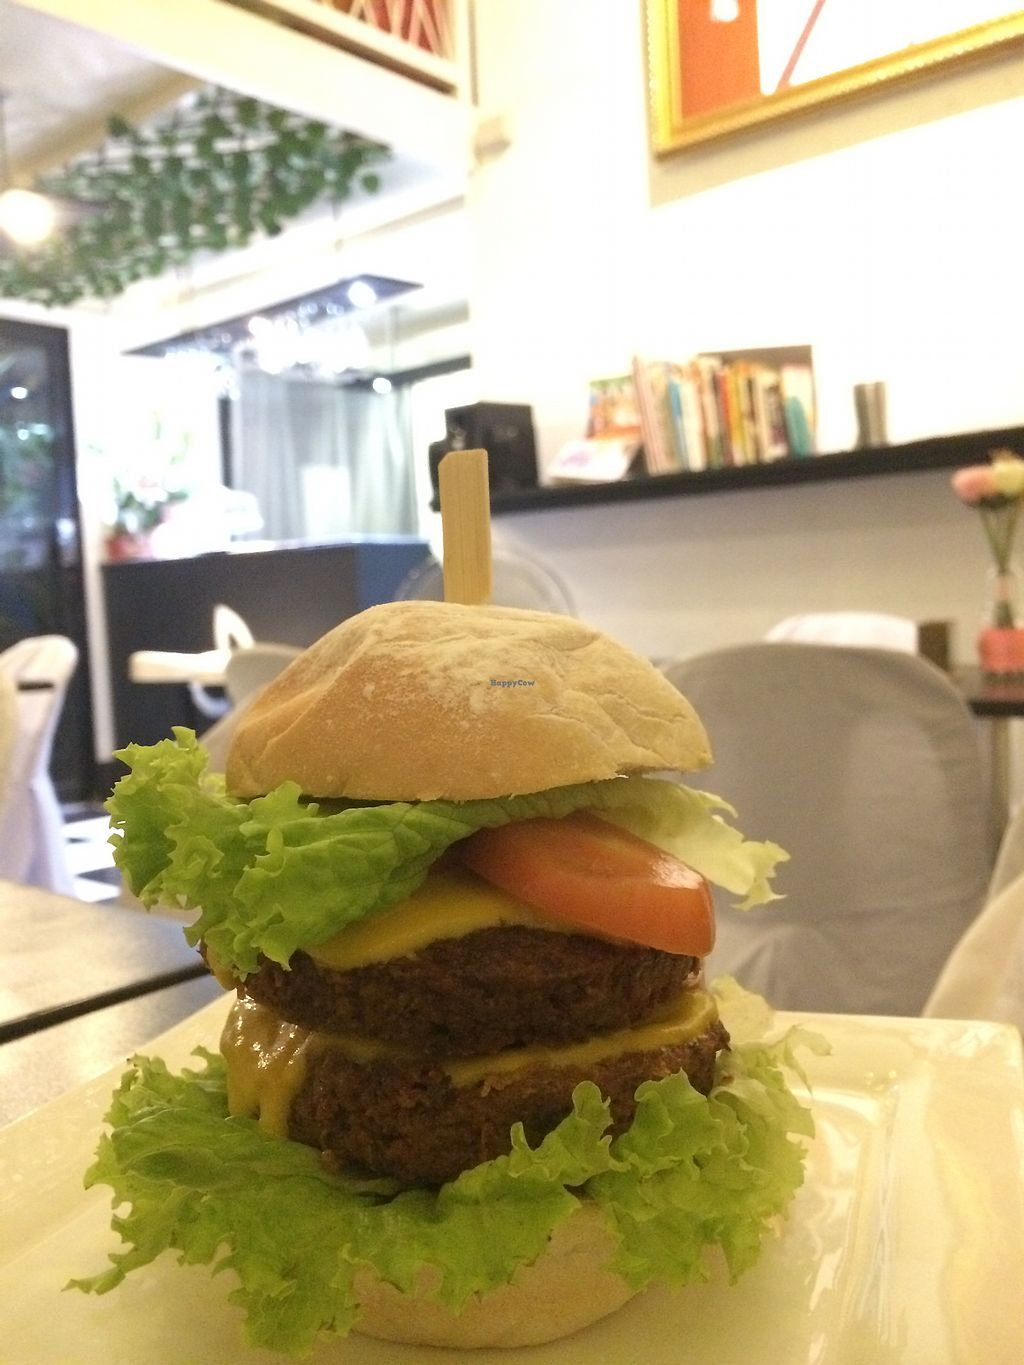 """Photo of Juicesabel  by <a href=""""/members/profile/Ellen_Hlx"""">Ellen_Hlx</a> <br/>Cheese burger <br/> November 28, 2017  - <a href='/contact/abuse/image/51511/330014'>Report</a>"""